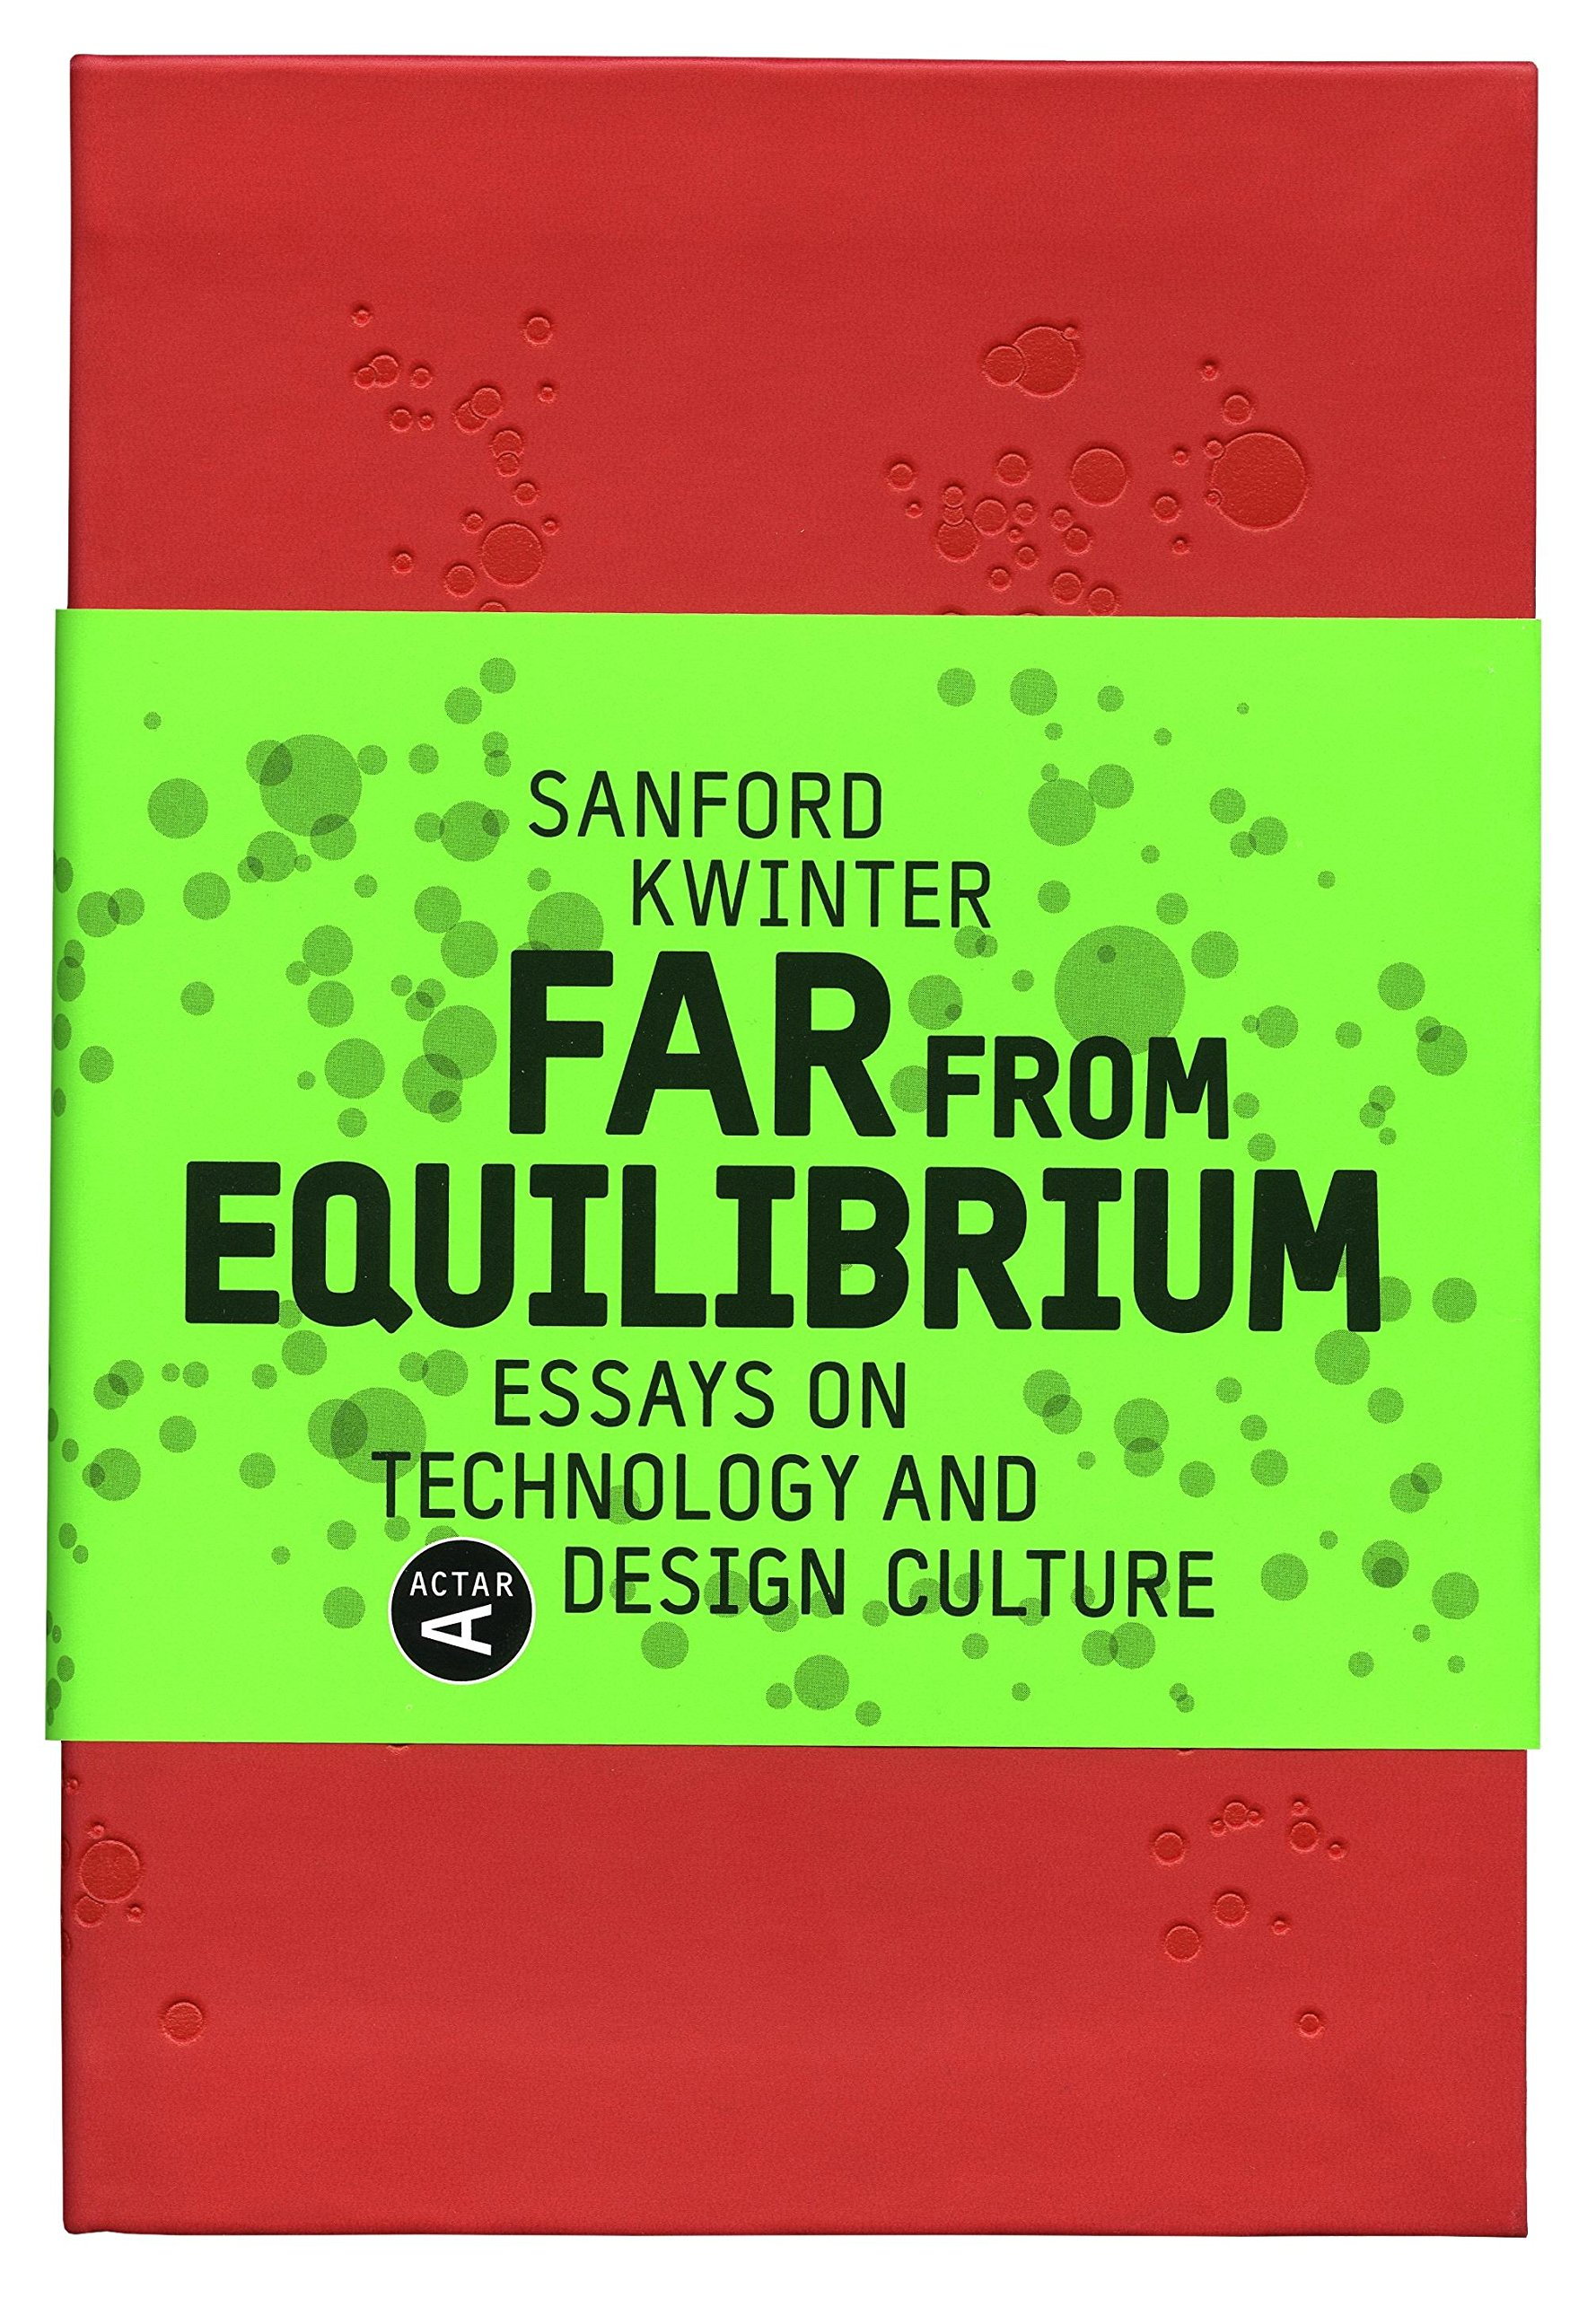 far from equilibrium essays on technology and design culture  far from equilibrium essays on technology and design culture amazon co uk sanford kwinter 9788496540644 books